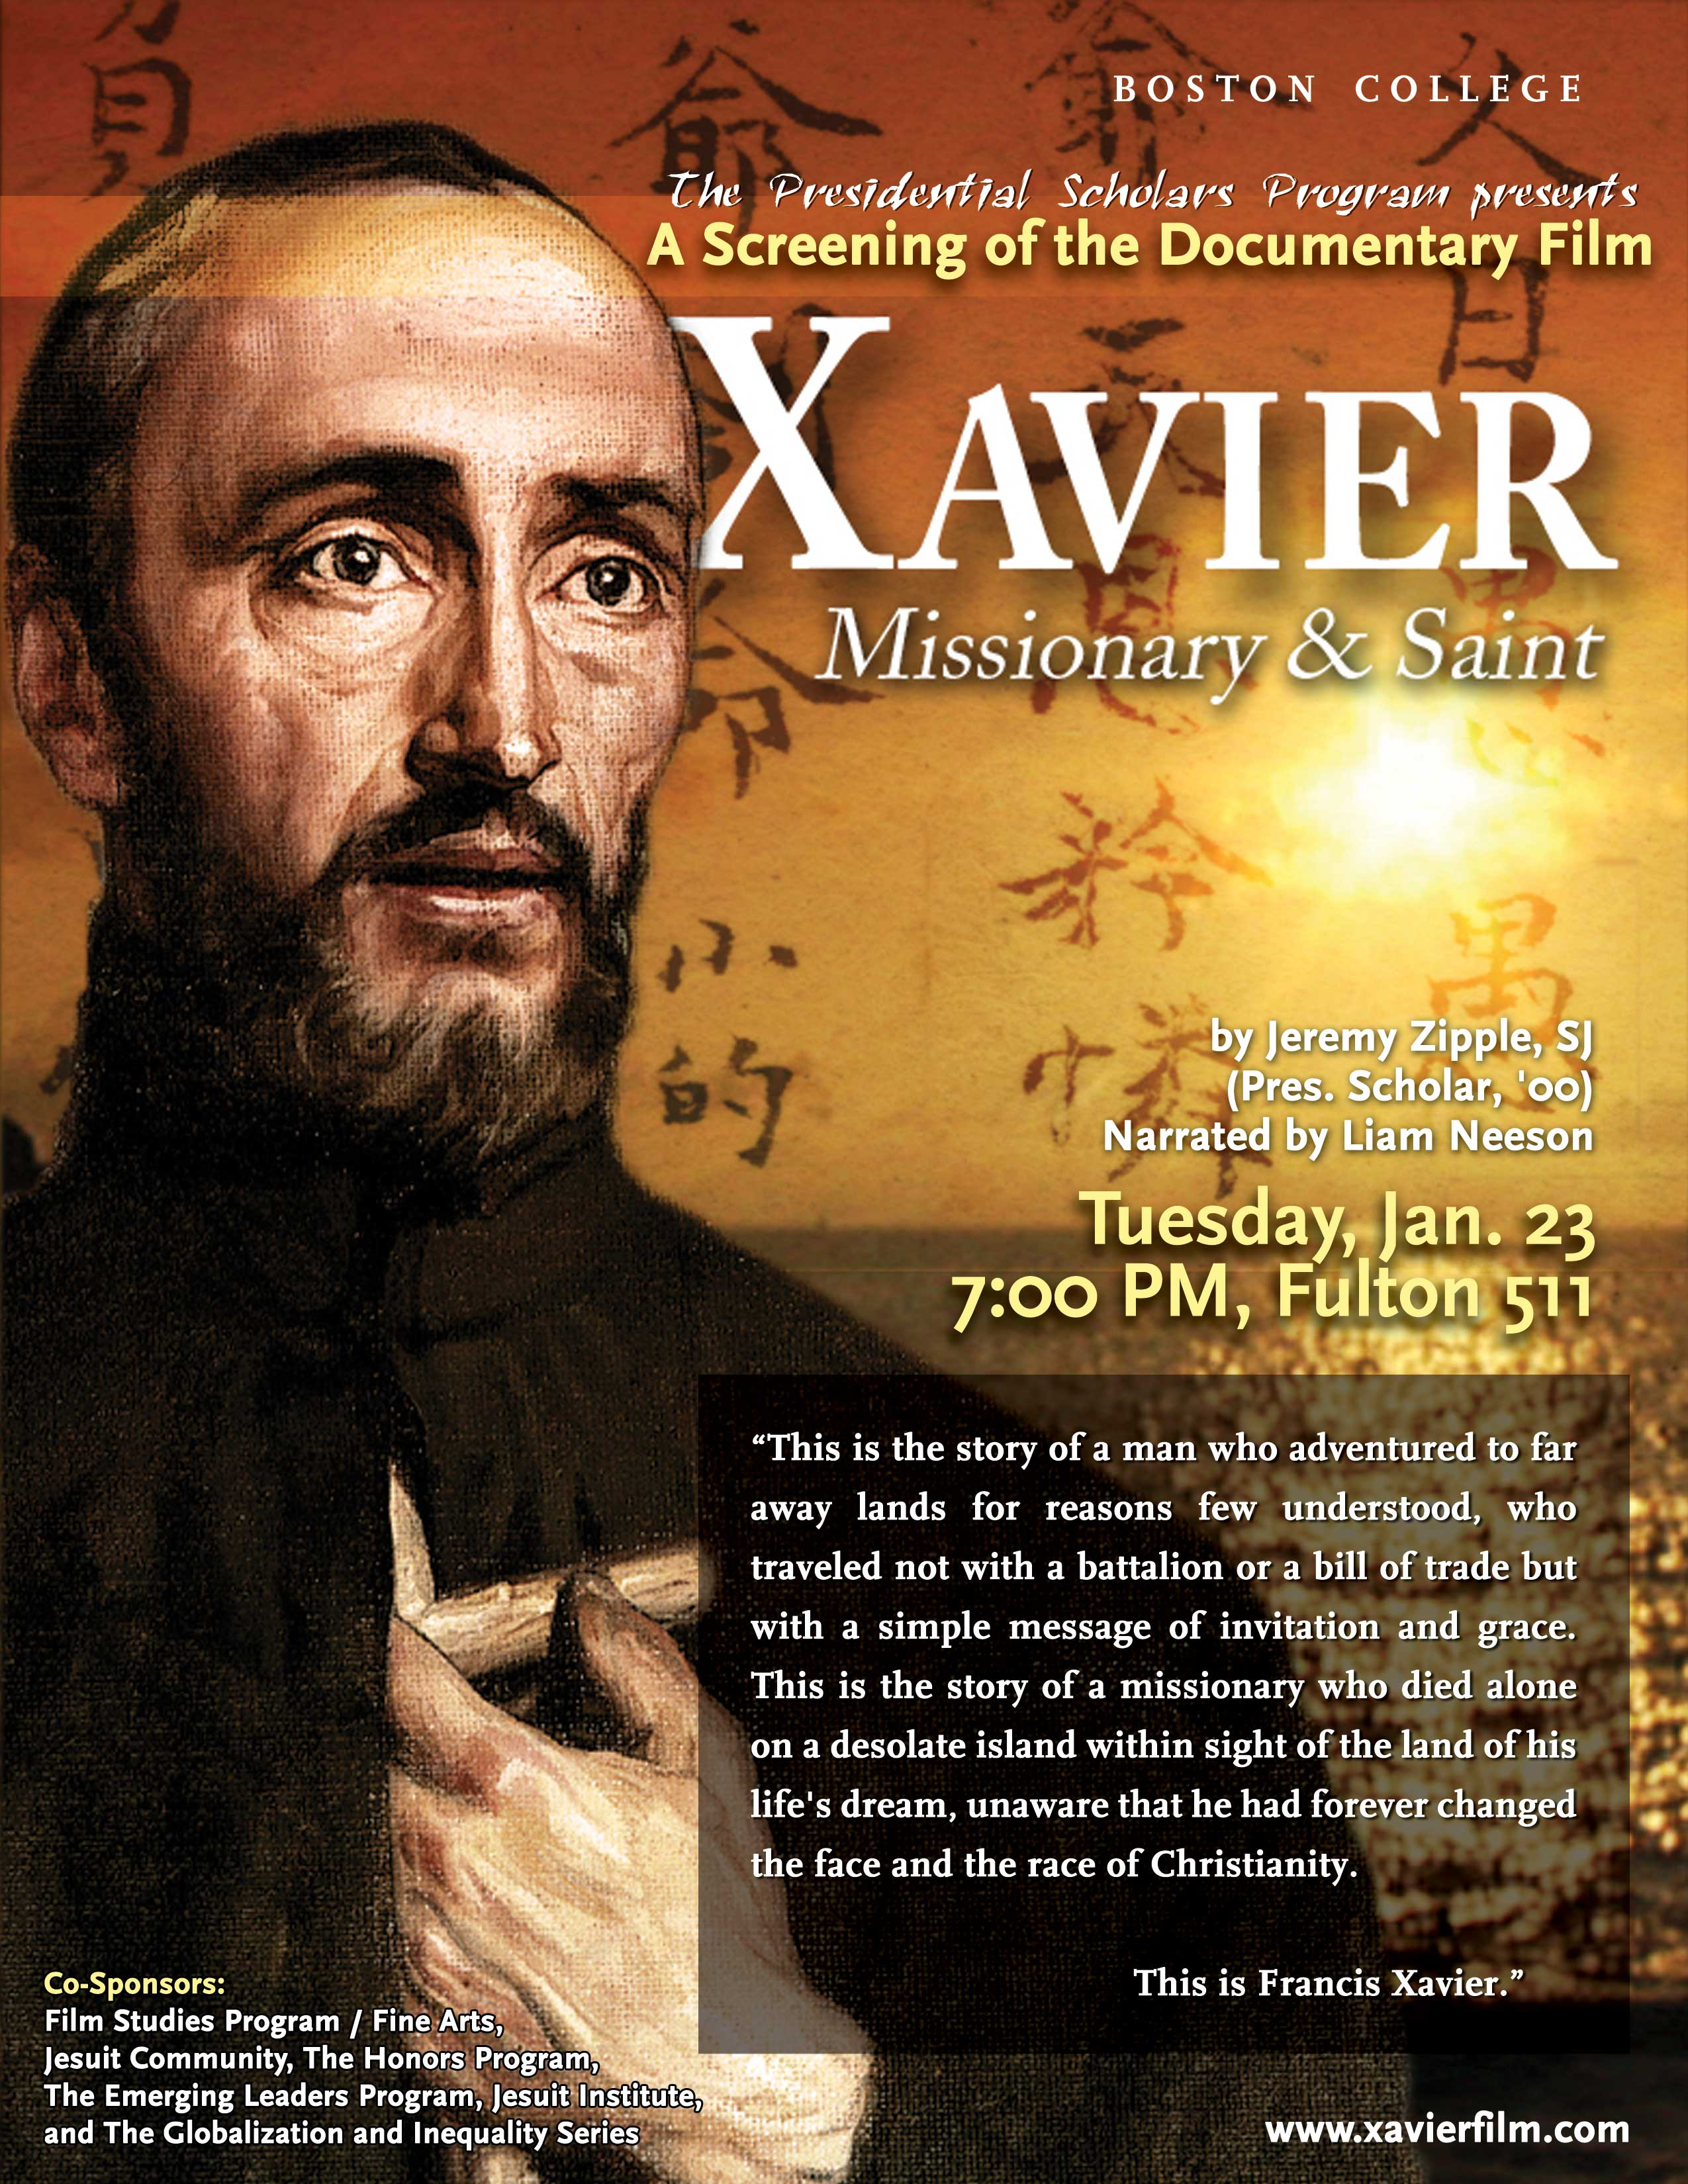 Screening Promotional Poster for Documentary Film, Xavier, Missionary and Saint